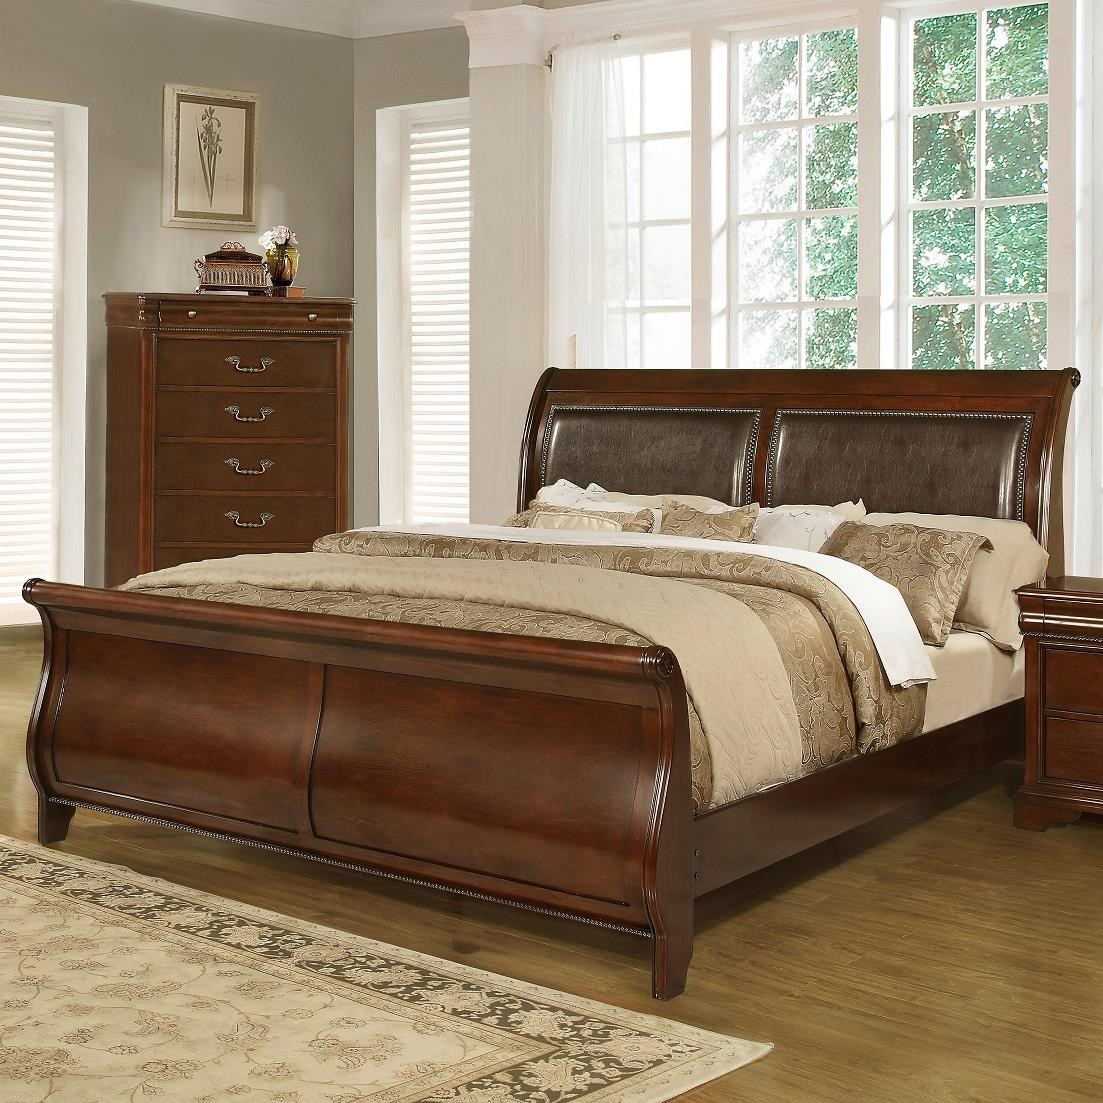 sleigh bed furniture. Lifestyle C4116A Traditional King Sleigh Bed Furniture